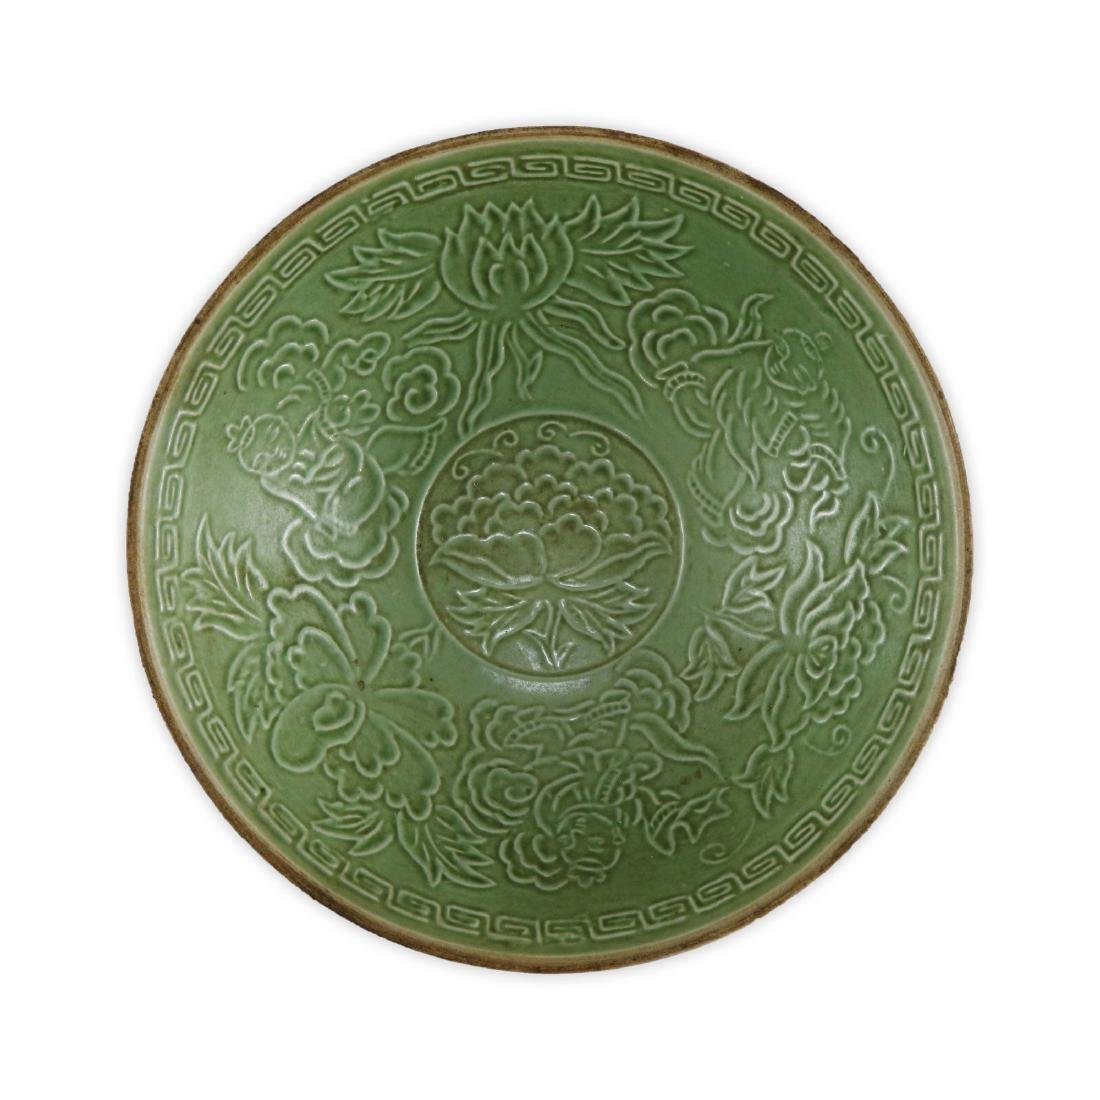 A CHINESE ANTIQUE DINGYAO INCISED PORCELAIN BOWL - 2